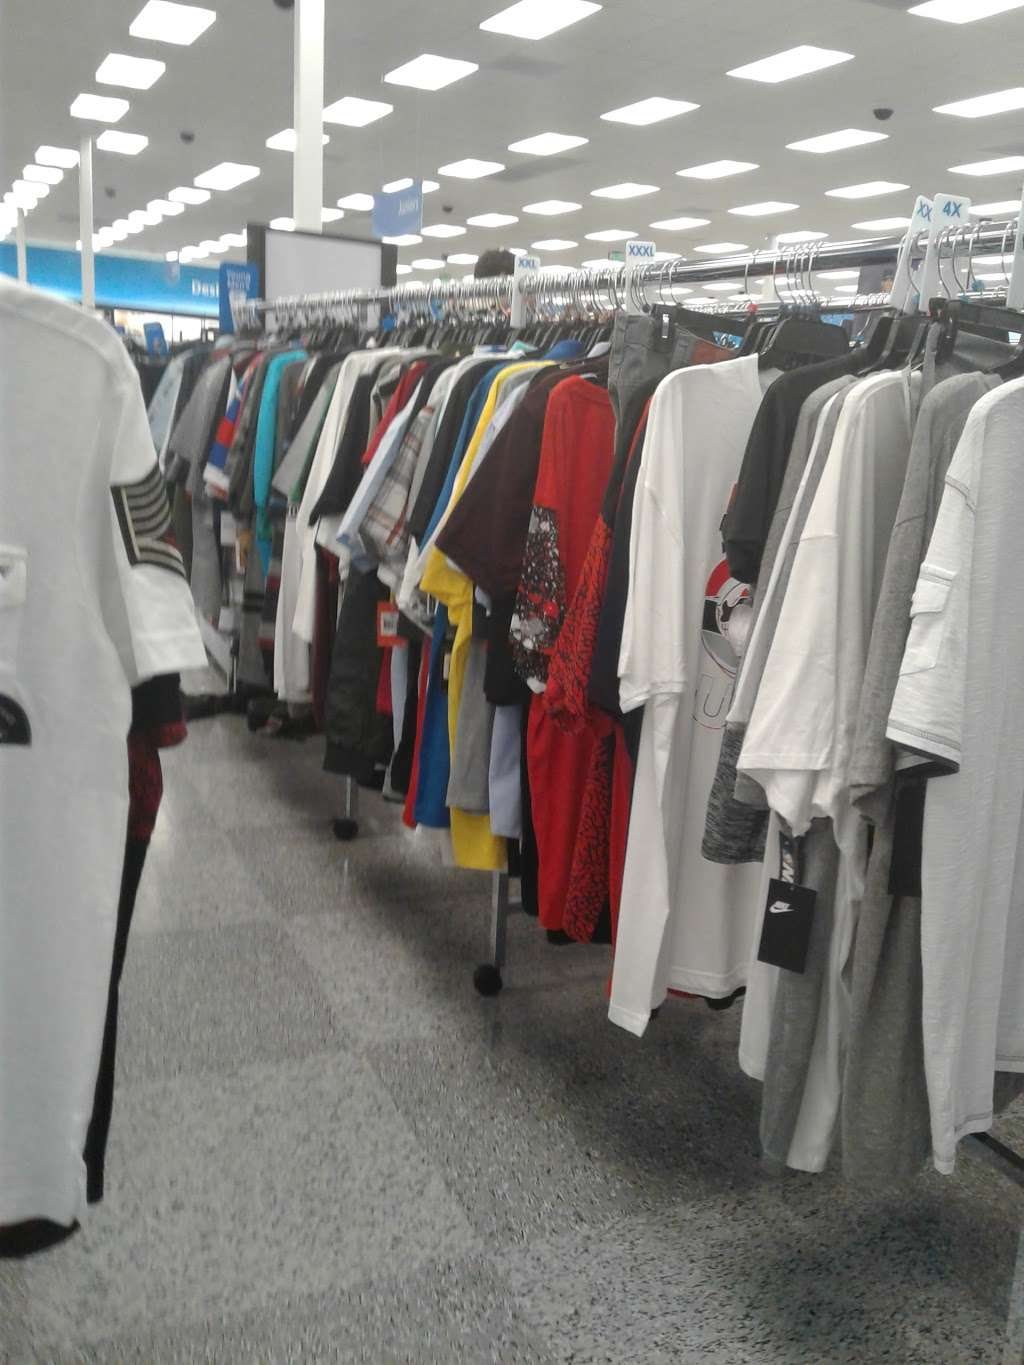 Ross Dress for Less - clothing store  | Photo 6 of 10 | Address: 6545 Spring Stuebner Rd, Spring, TX 77379, USA | Phone: (281) 370-0389